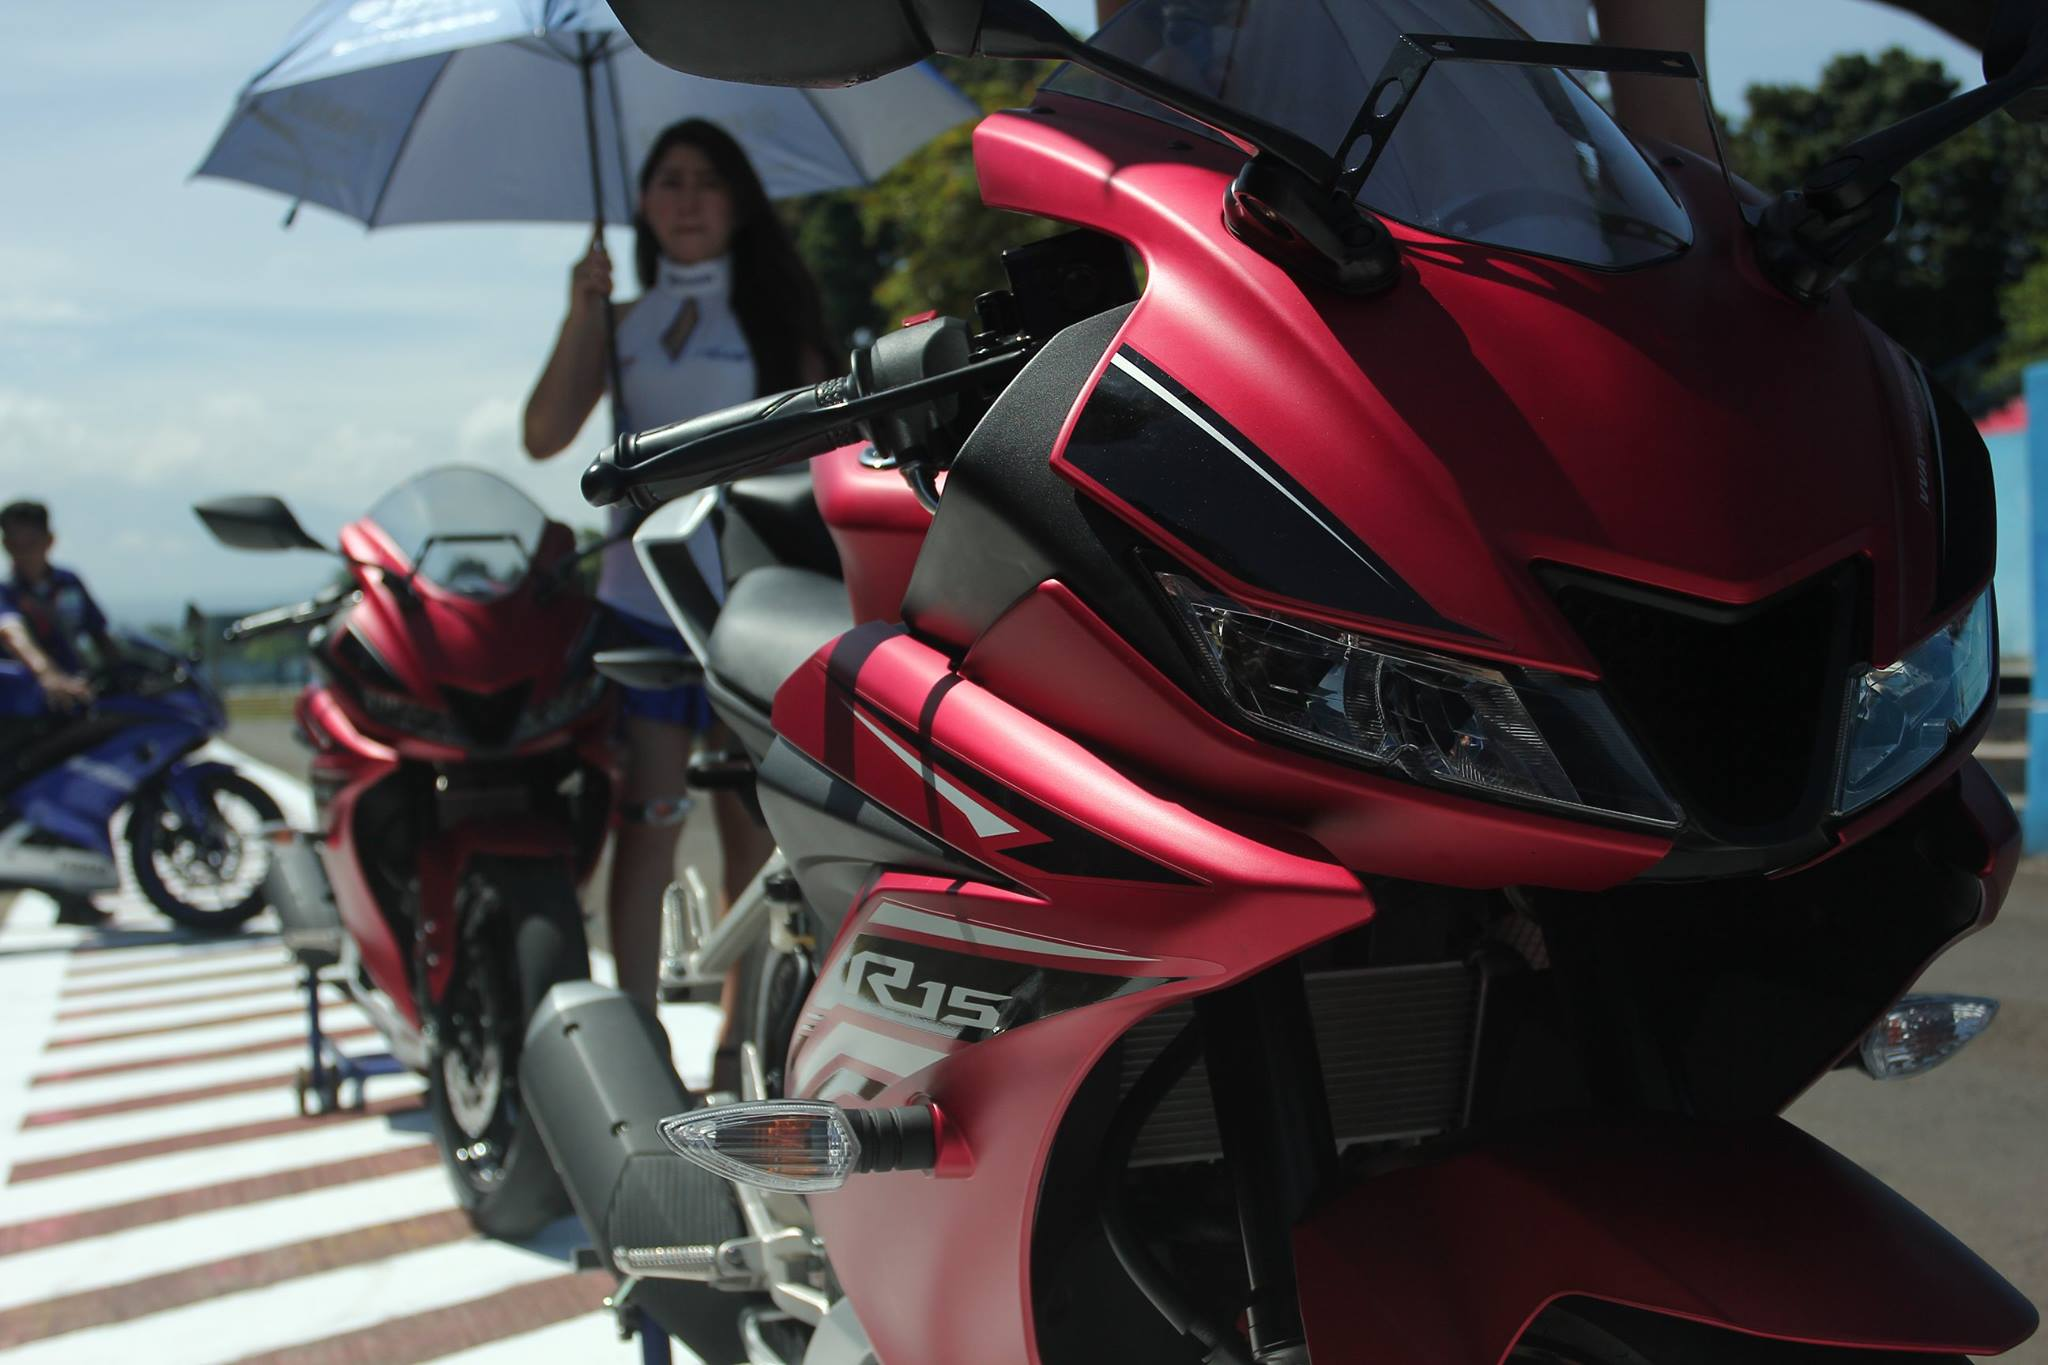 2017 yamaha r15 v3 0 unveiled most powerful bike for Yamaha r15 v3 price philippines